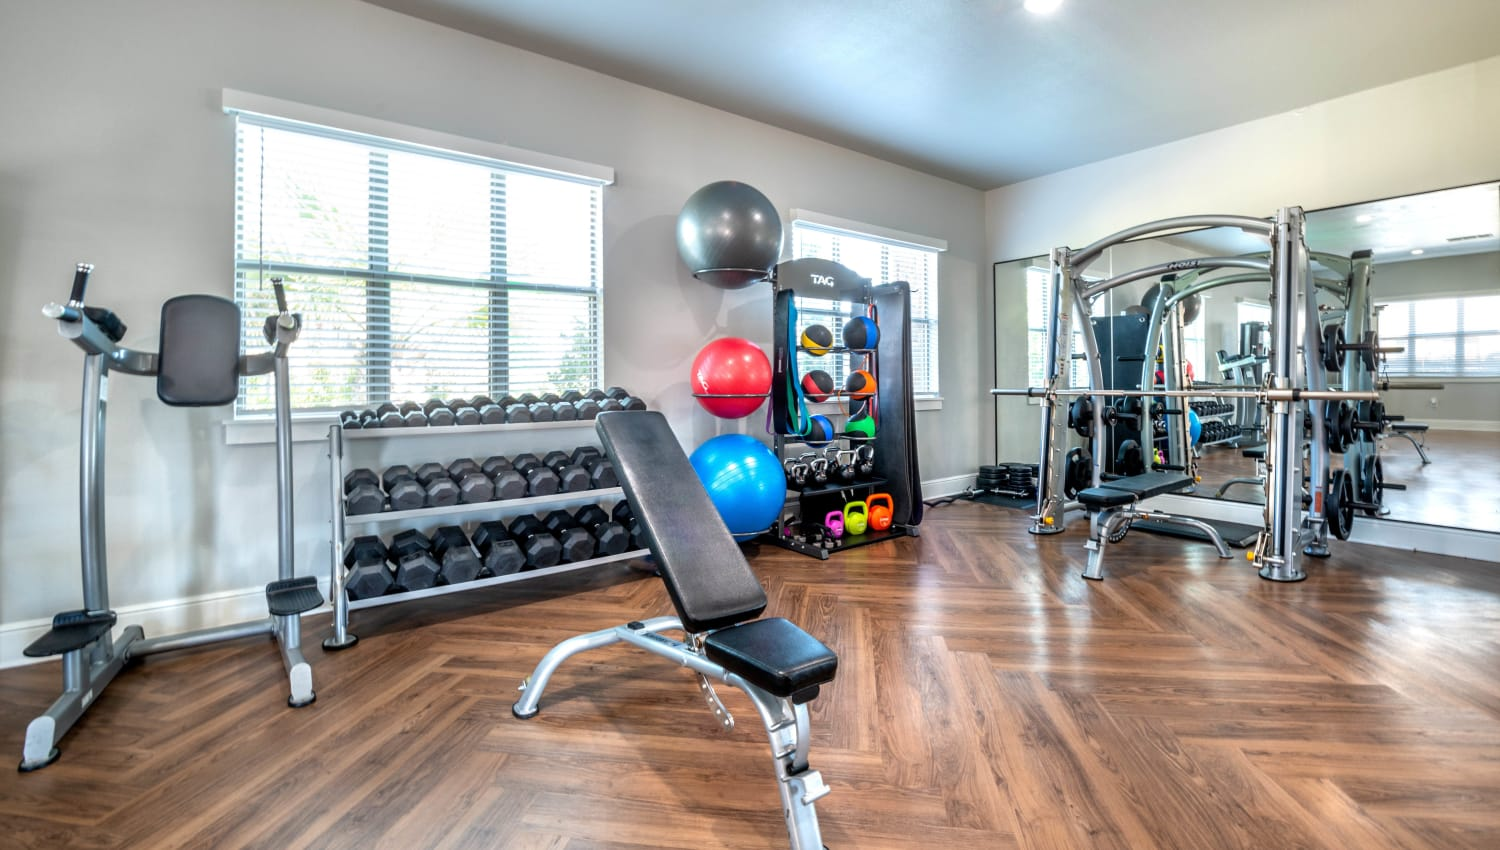 Fitness center at Olympus Willow Park in Willow Park, Texas